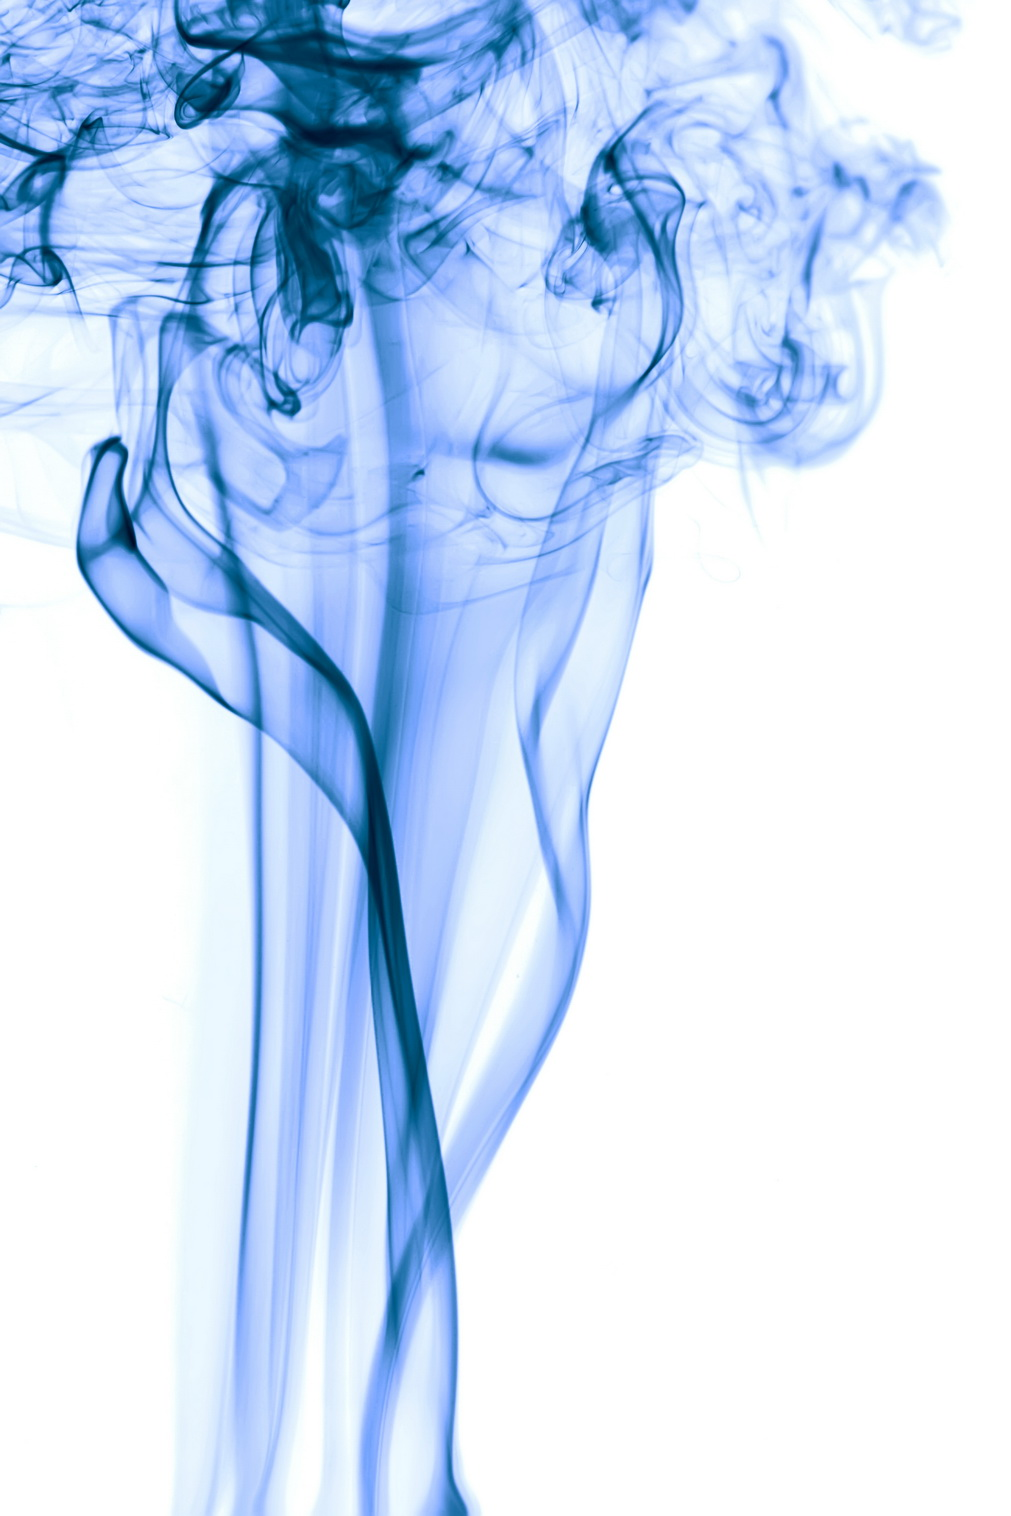 blue smoke, Abstract, Smell, Lines, Magic, HQ Photo